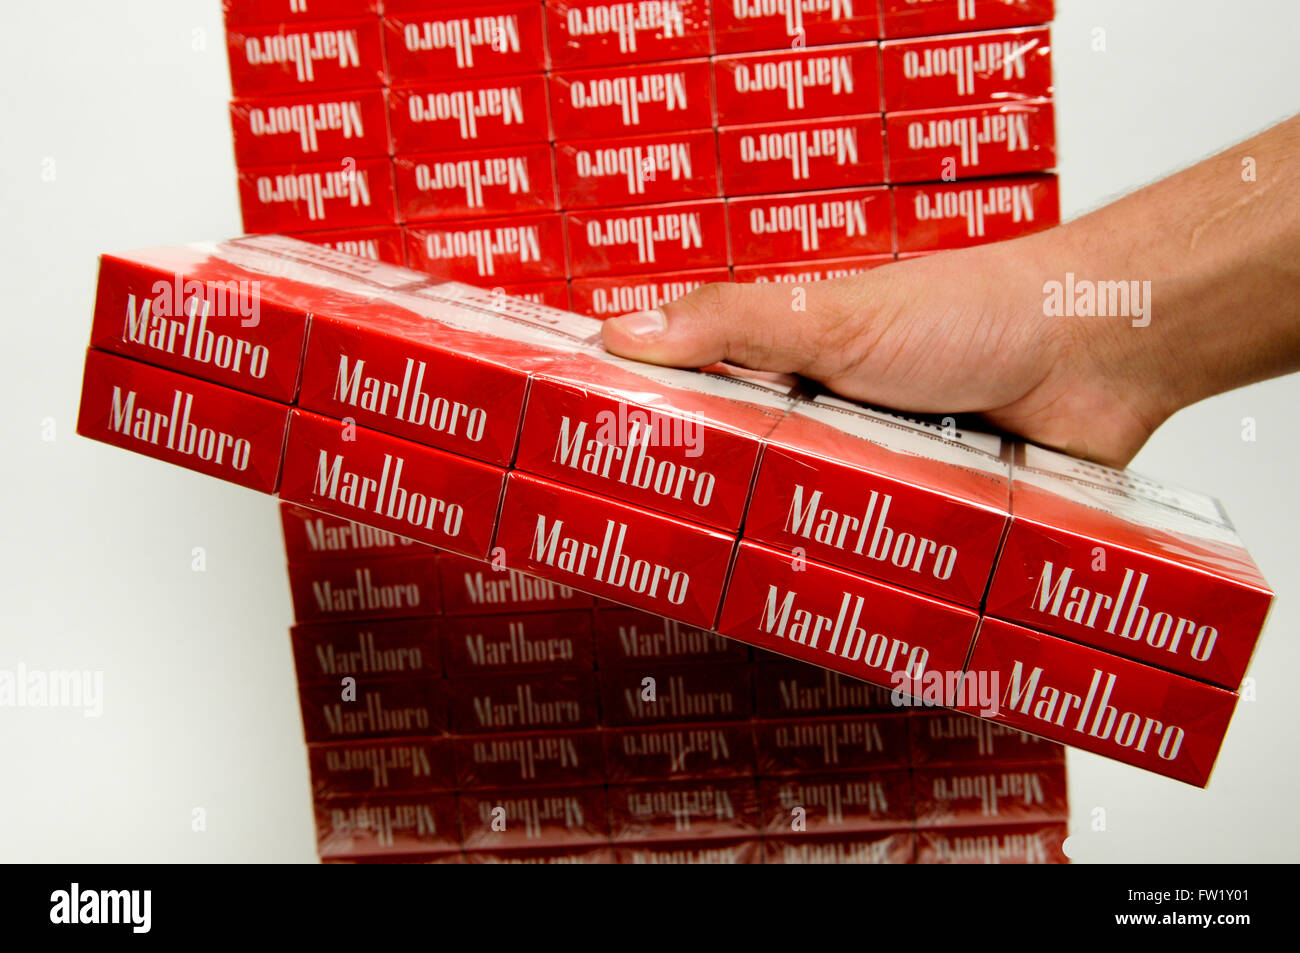 How much are cigarettes in London airport